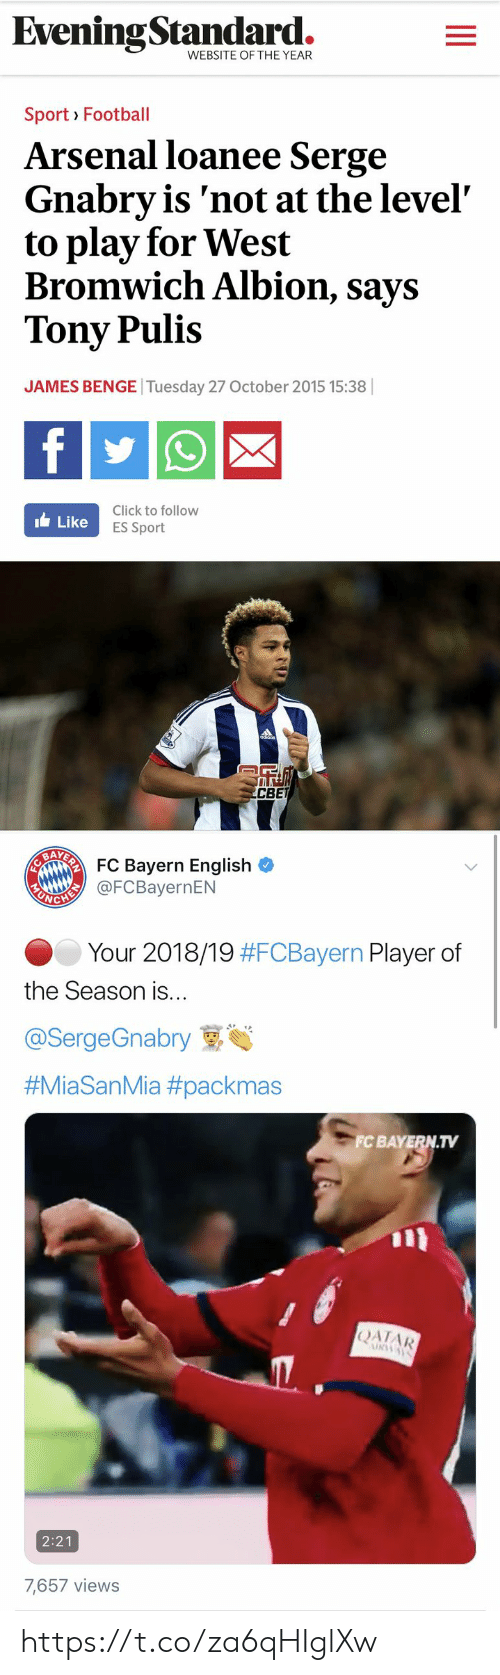 Bayern: EveningStandard.  WEBSITE OF THE YEAR  Sport Football  Arsenal loanee Serge  Gnabry is 'not at the level  to play for West  Bromwich Albion, says  Tony Pulis  JAMES BENGE Tuesday 27 October 2015 15:38 ||  f  Click to follow  ILike  ES Sport  R  CBET   EAARFC Bayern English  EANGHI@FCBayernEN  Your 2018/19 #FCBayern Player of  the Season is...  @SergeGnabry  #MiaSanMia #packmas  FC BAYERN.TV  |ΑΙAR  URWAY  2:21  7,657 views https://t.co/za6qHIglXw